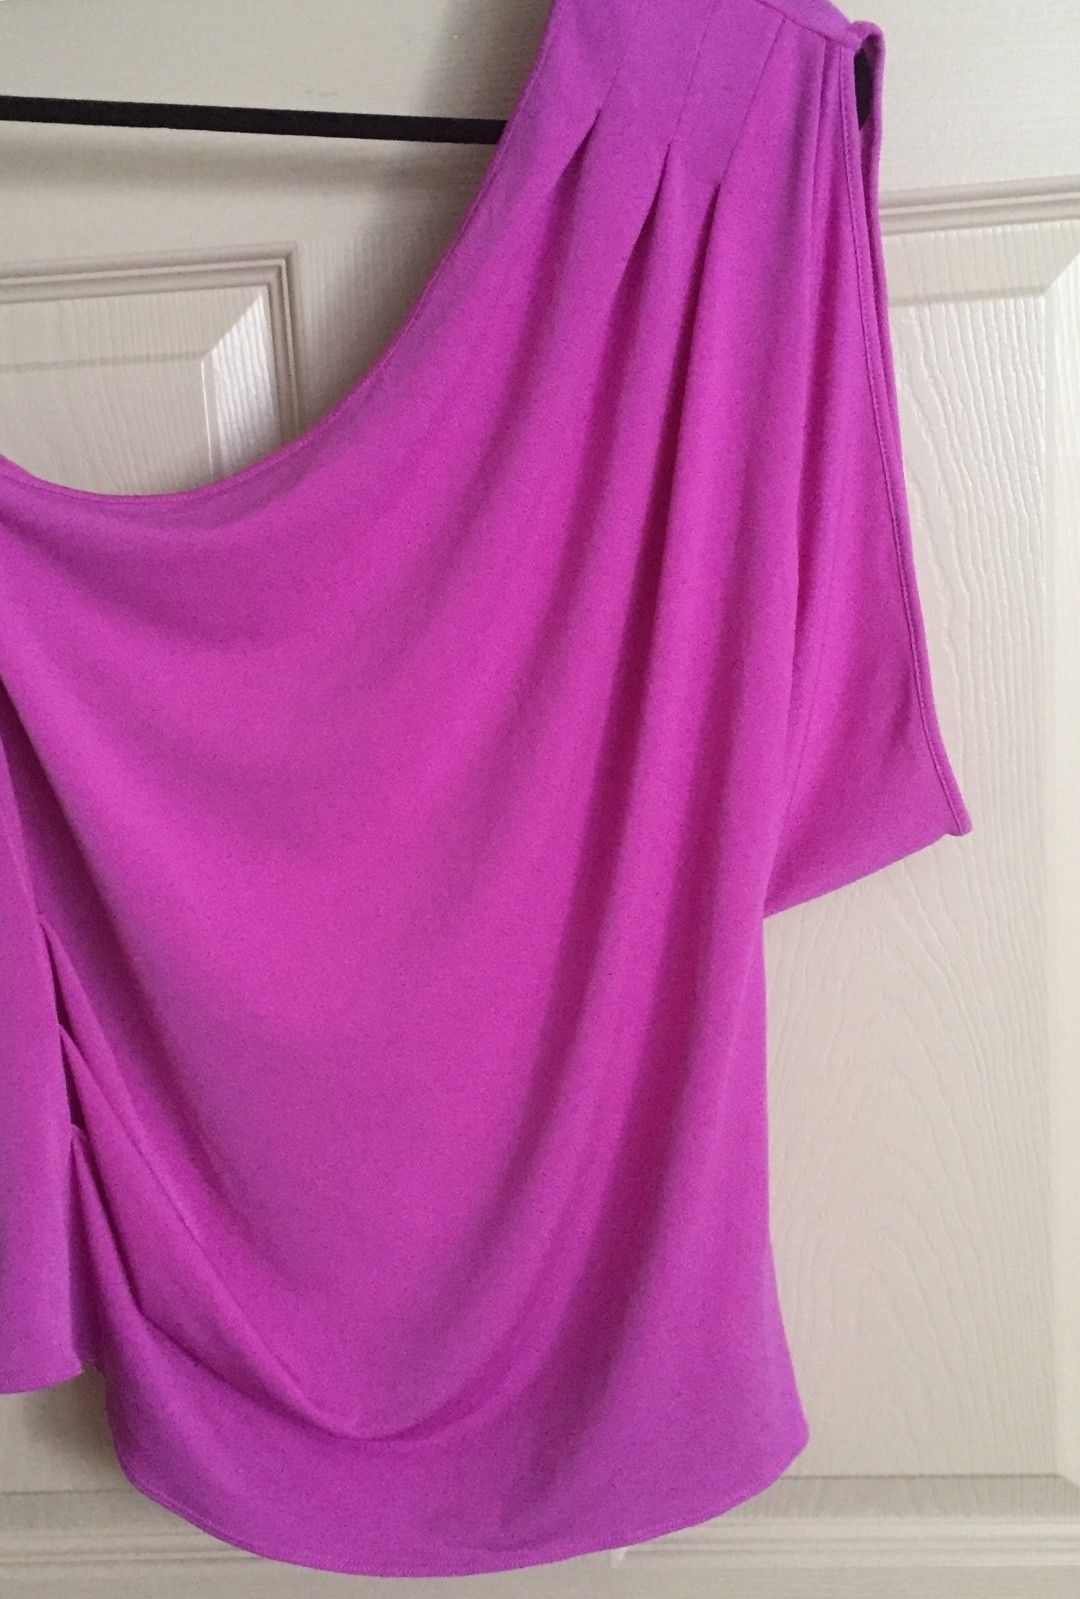 Express Women Top Blouse Size Large Pink One Shoulder One Sleeve Trendy New image 8